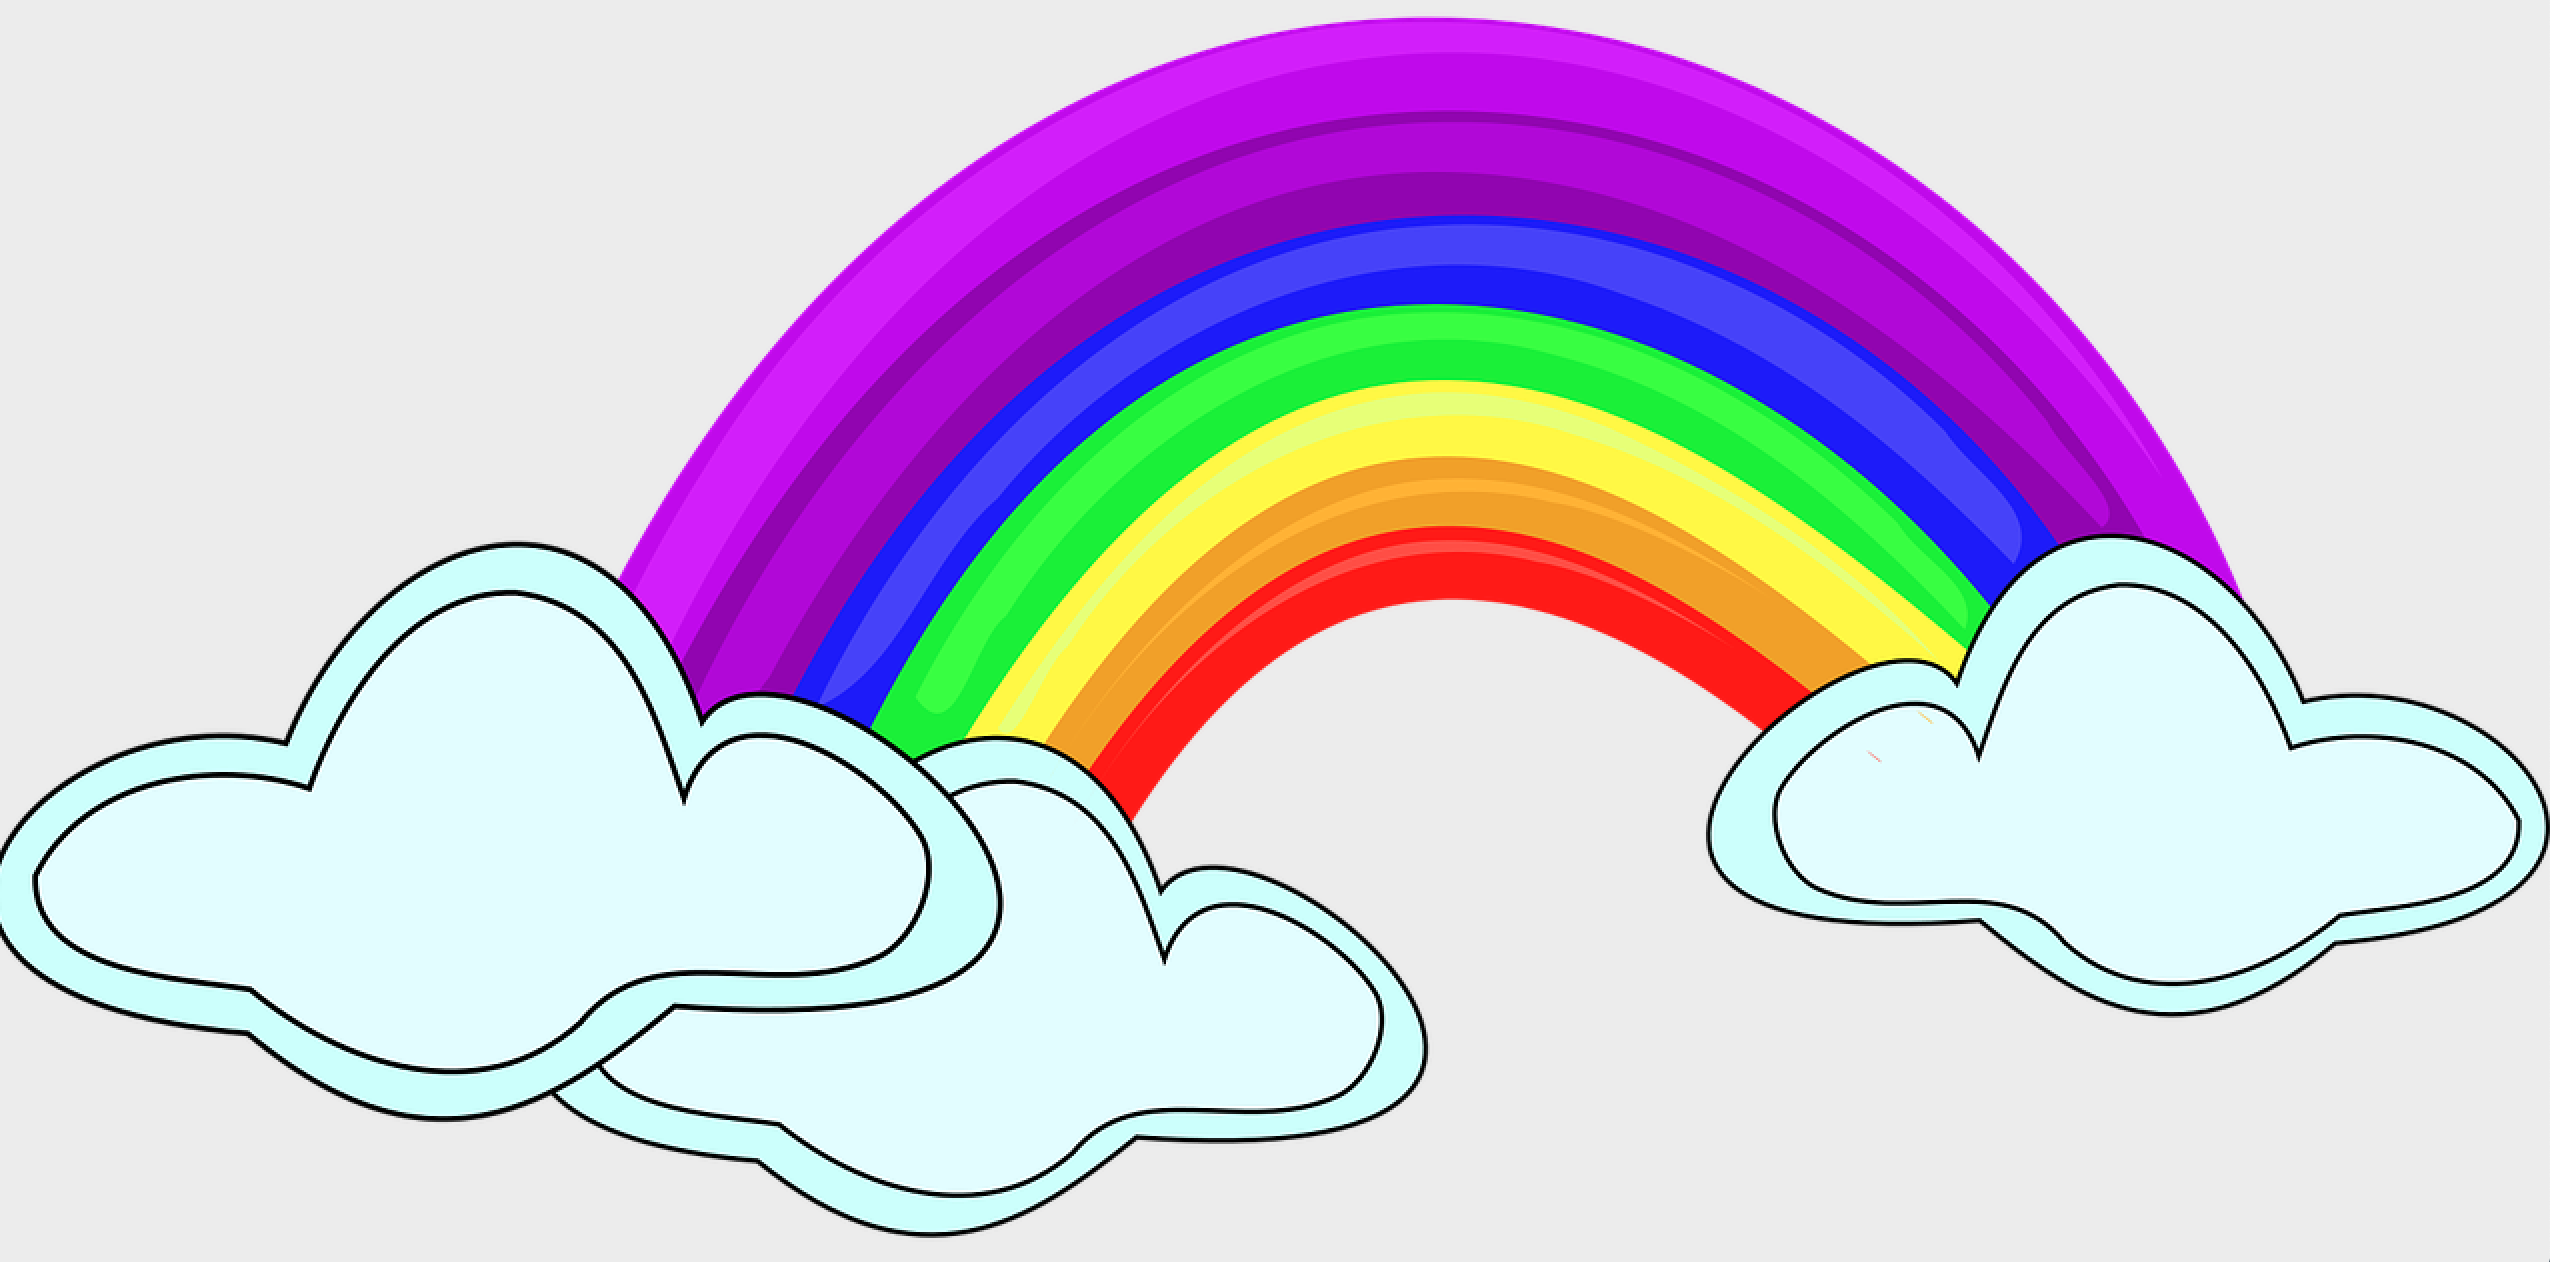 rainbow clipart edteam April 2020